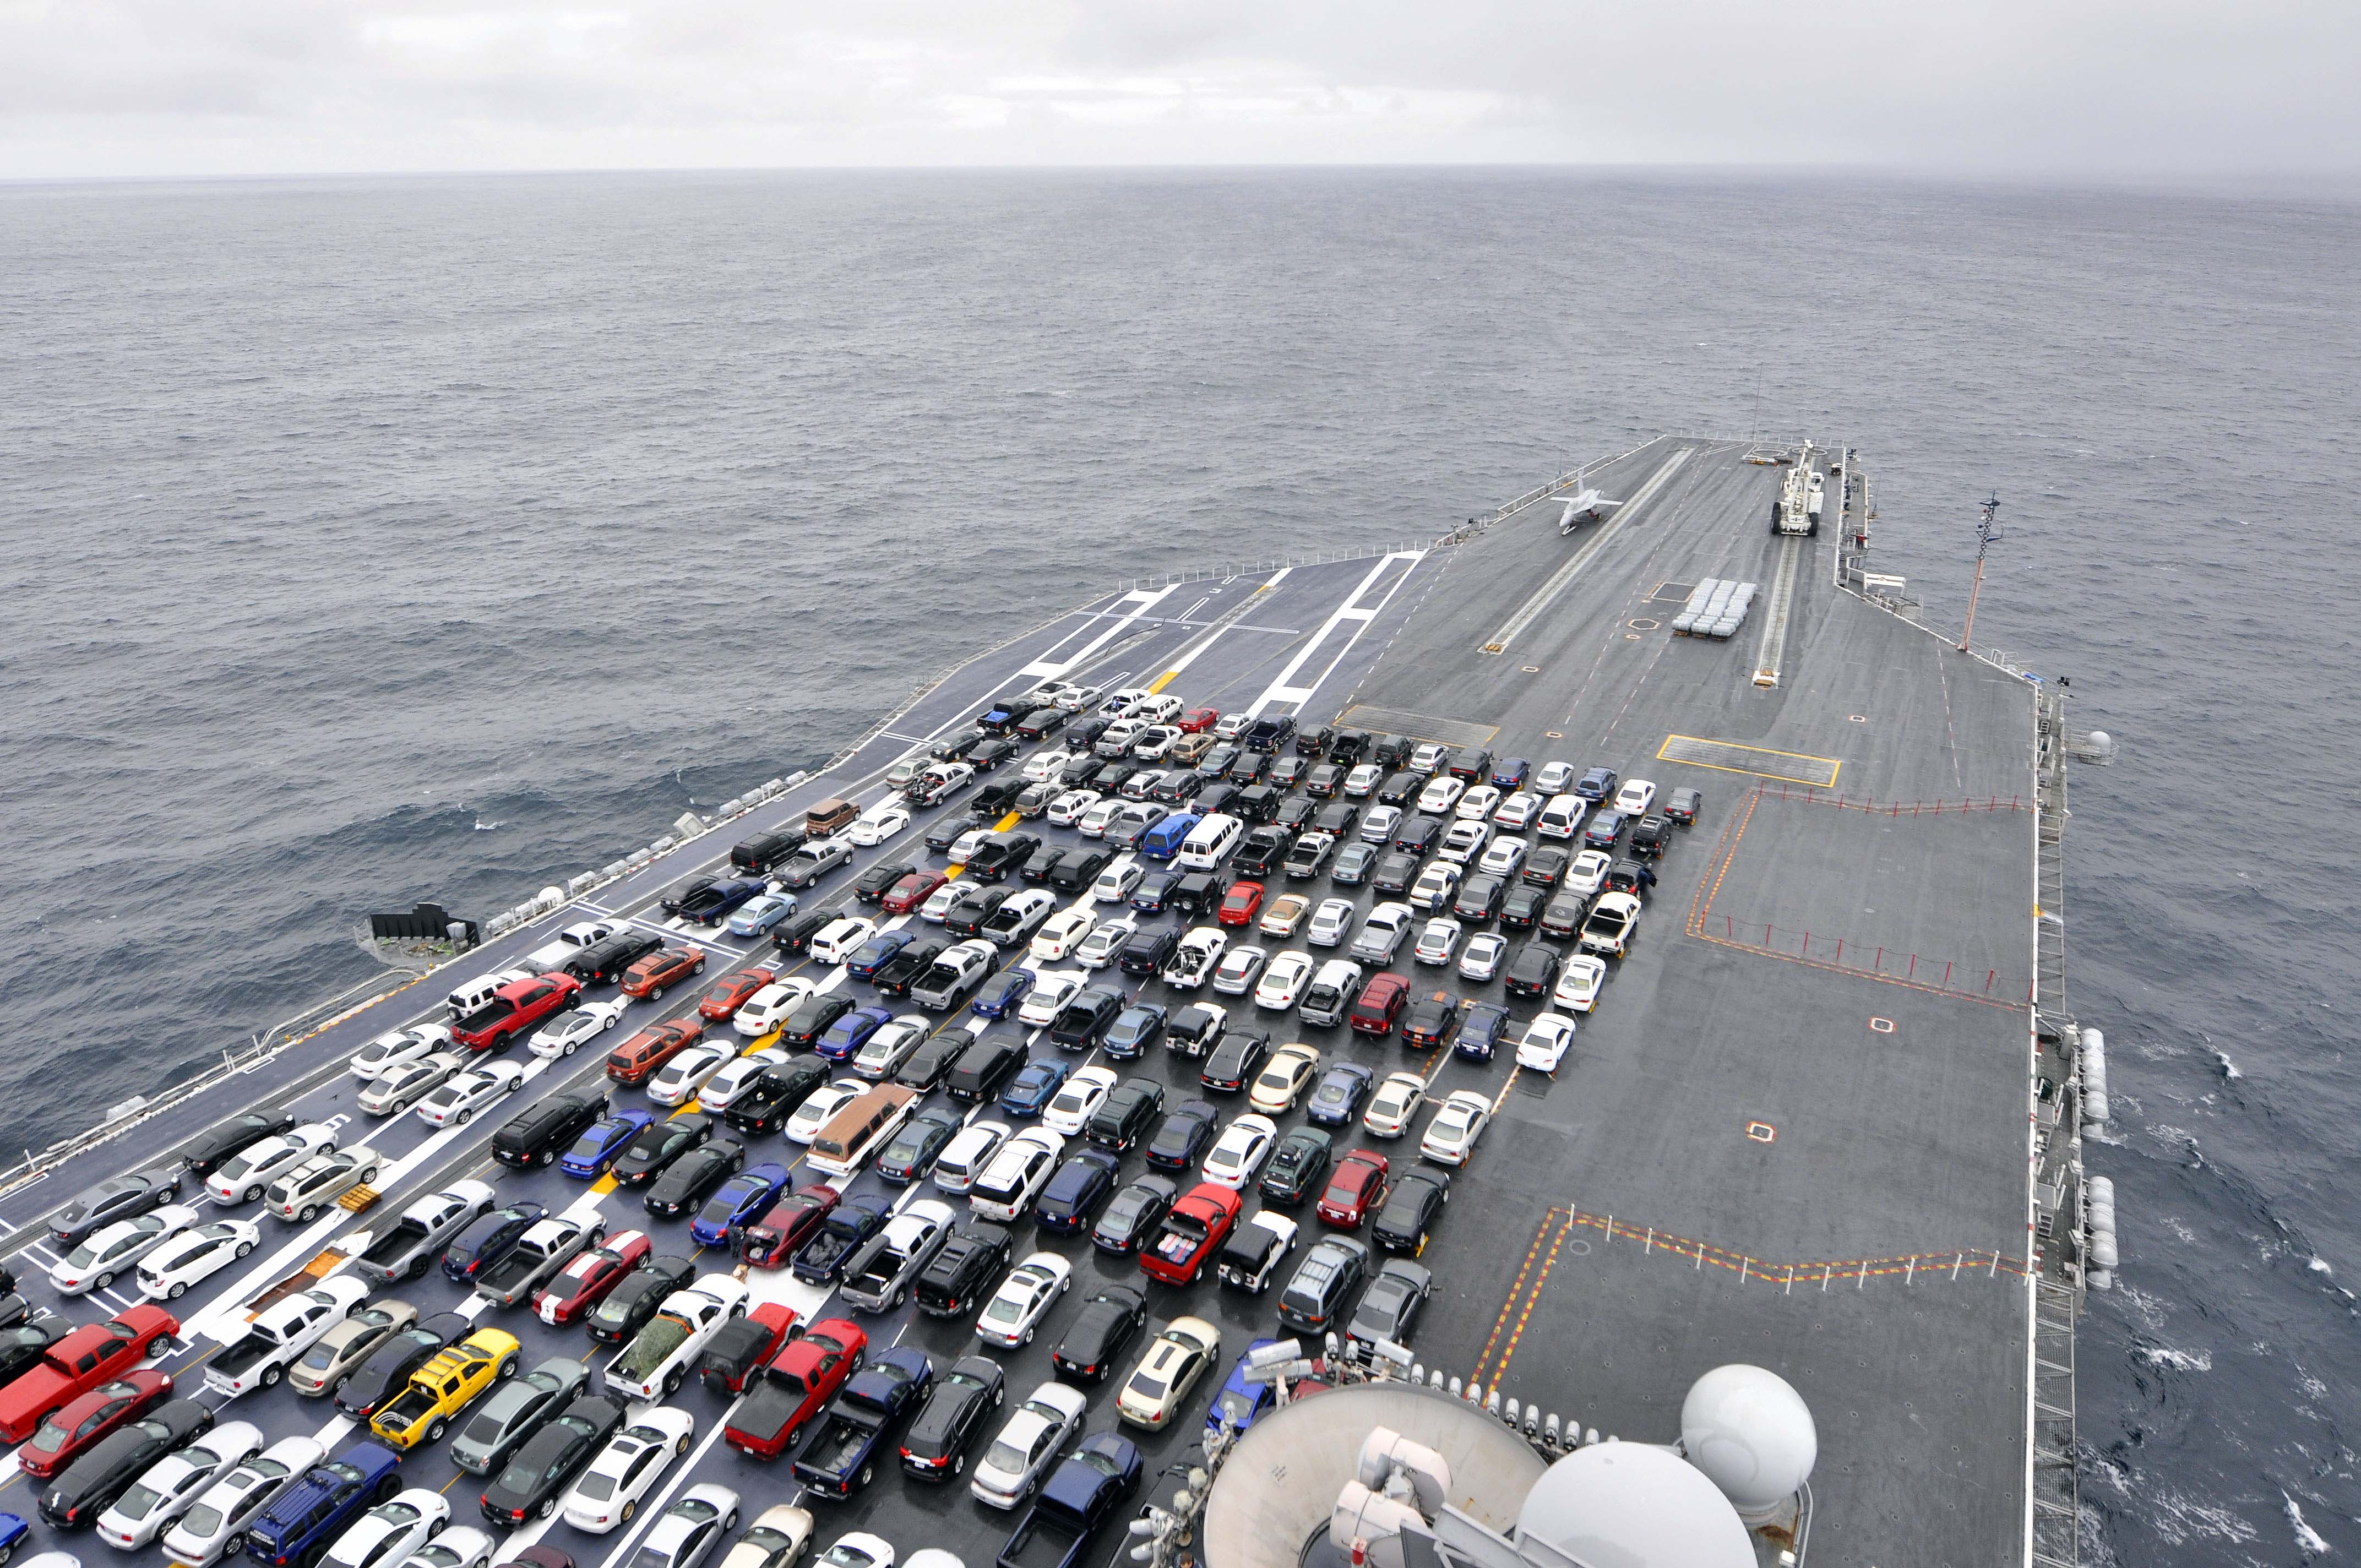 The crew's cars parked on the deck of USS Reagan as it ...